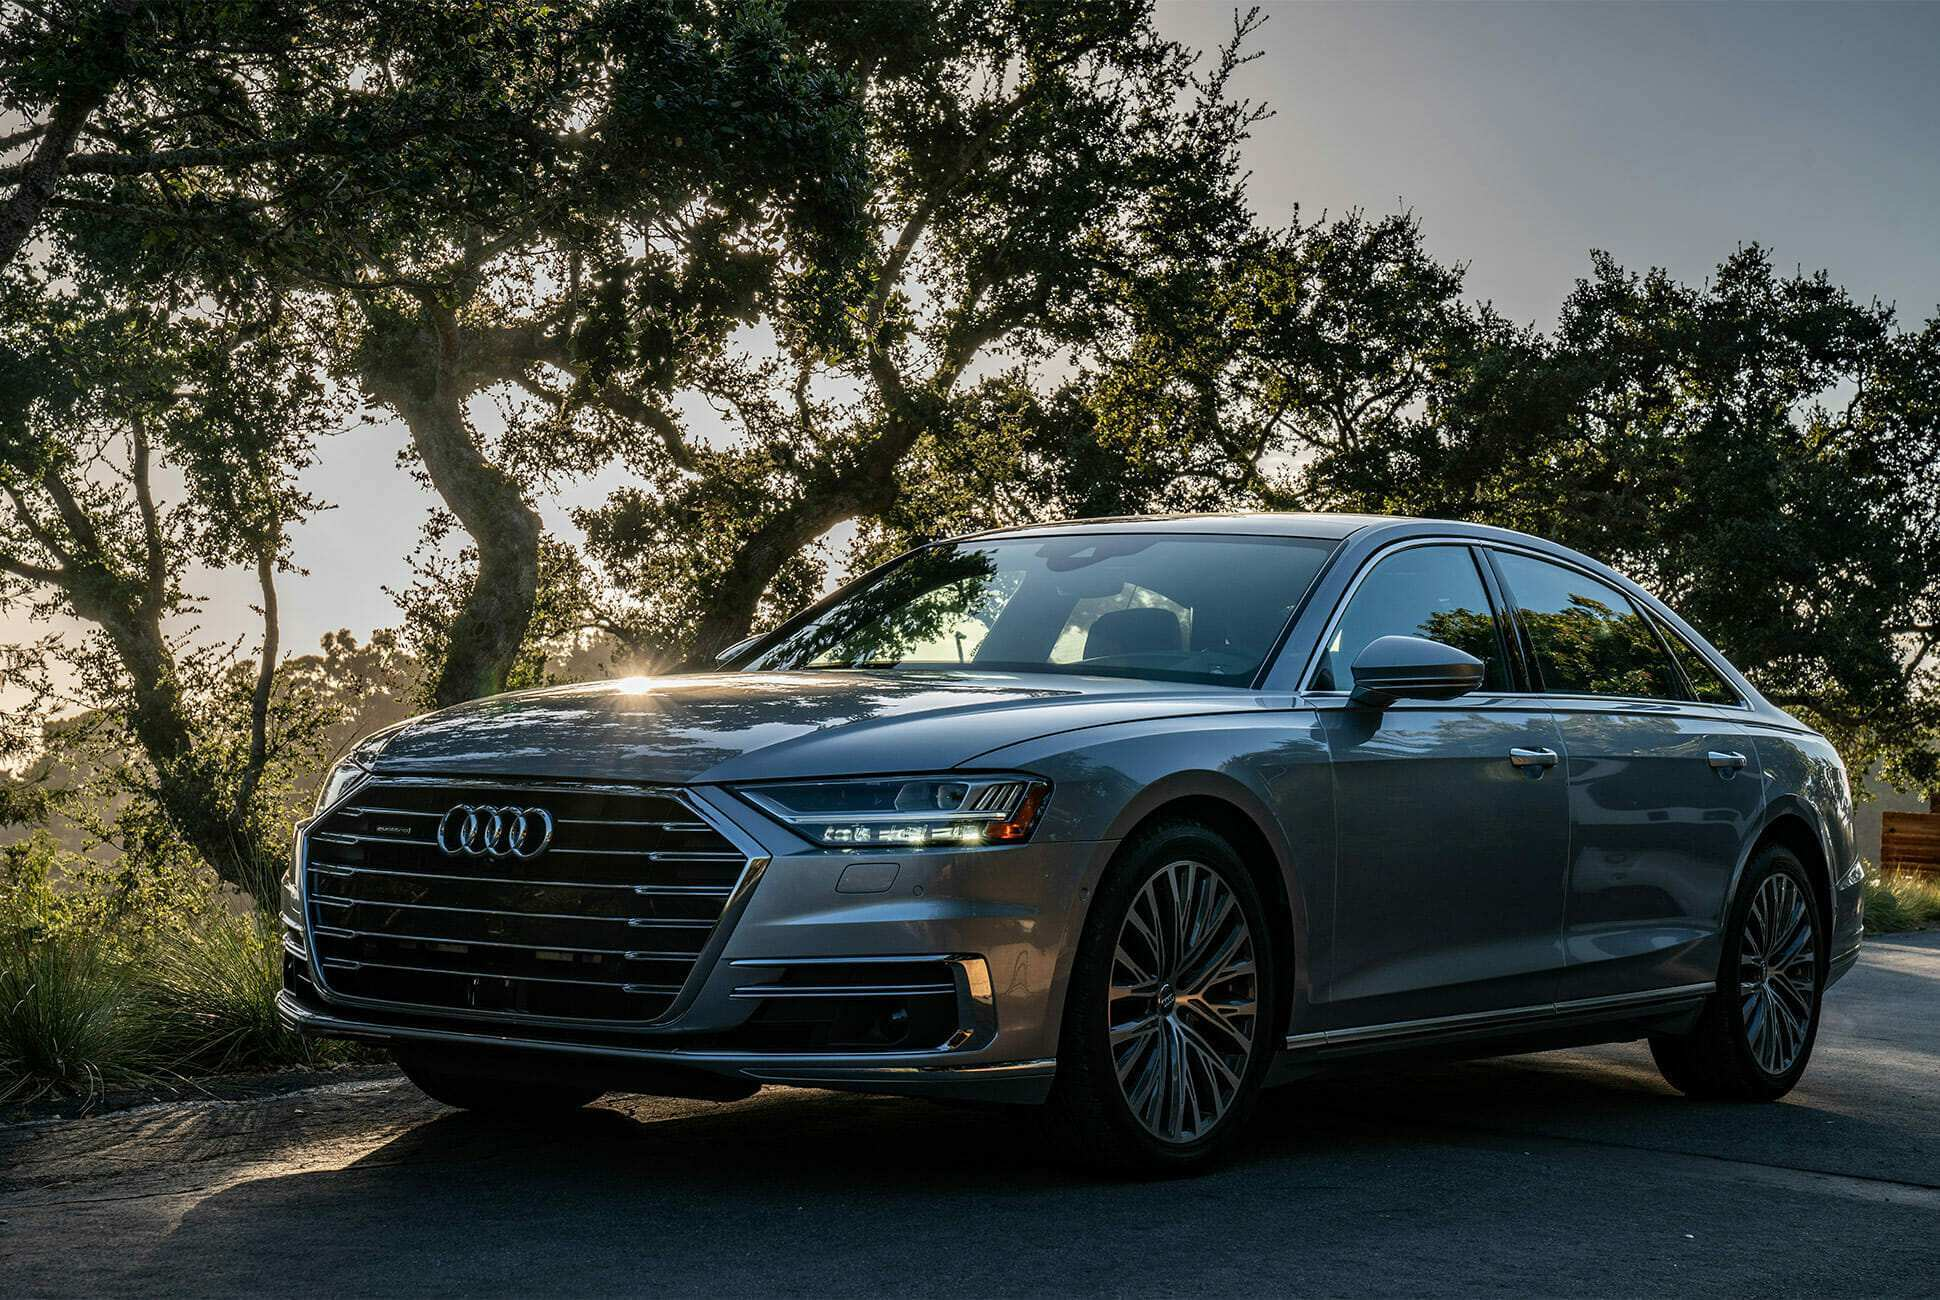 56 All New 2019 Audi S8 Price and Review